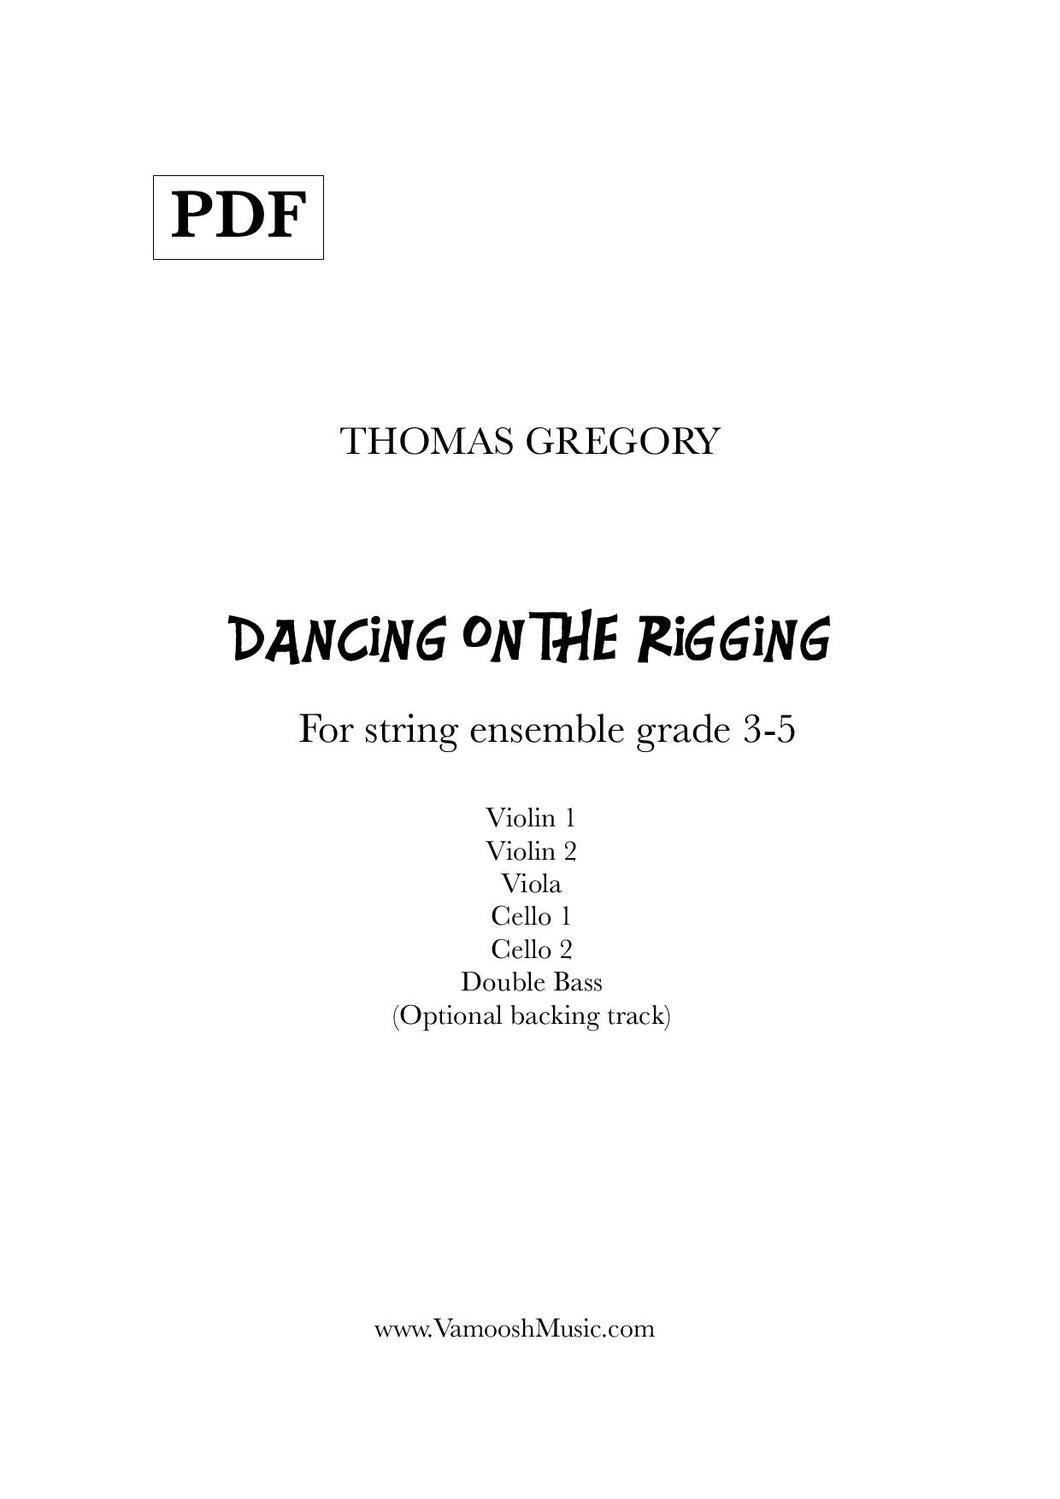 Dancing on the Rigging Backing Track (MP3)